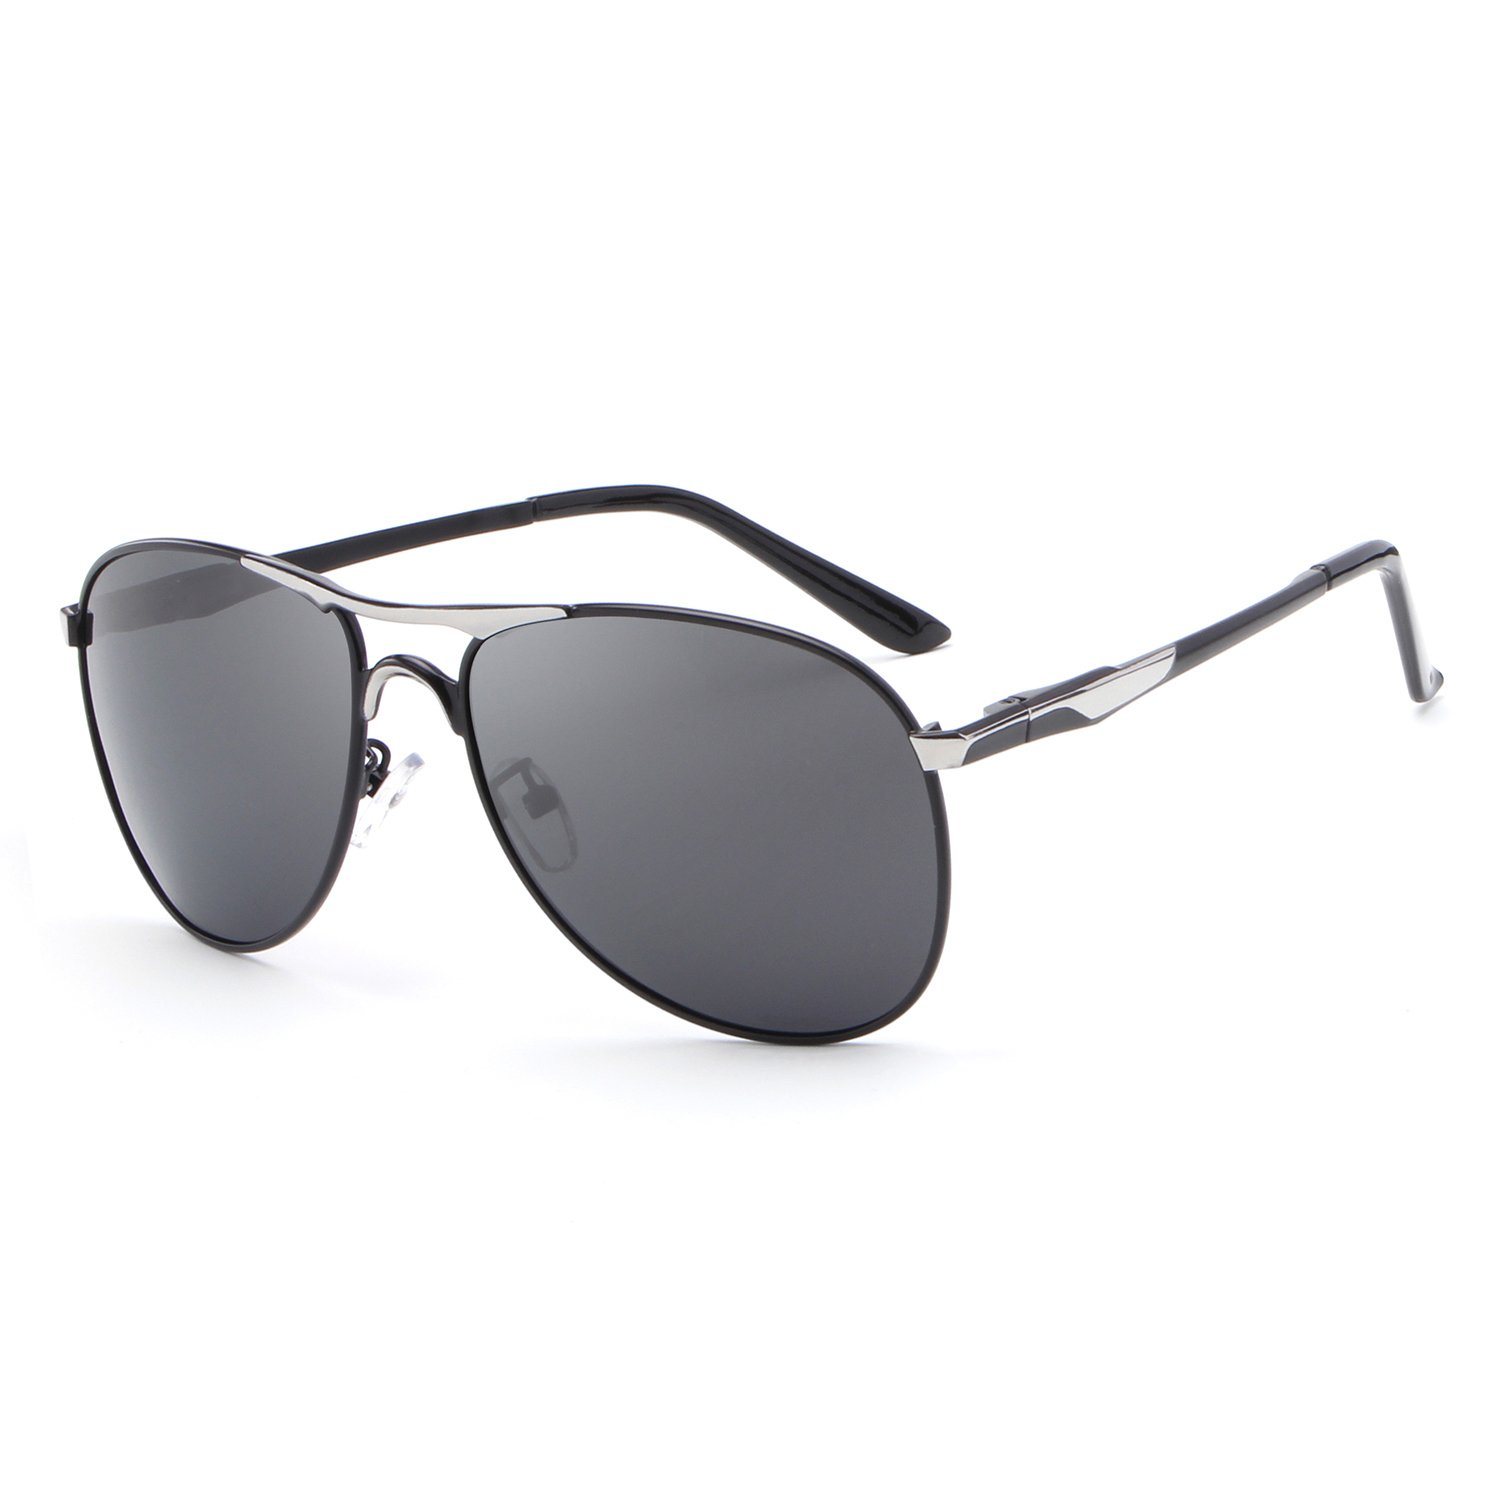 0d34d983278 Amazon.com  HDCRAFTER Polarized Aviators Metal Frame Sunglasses Black for  Men  Clothing